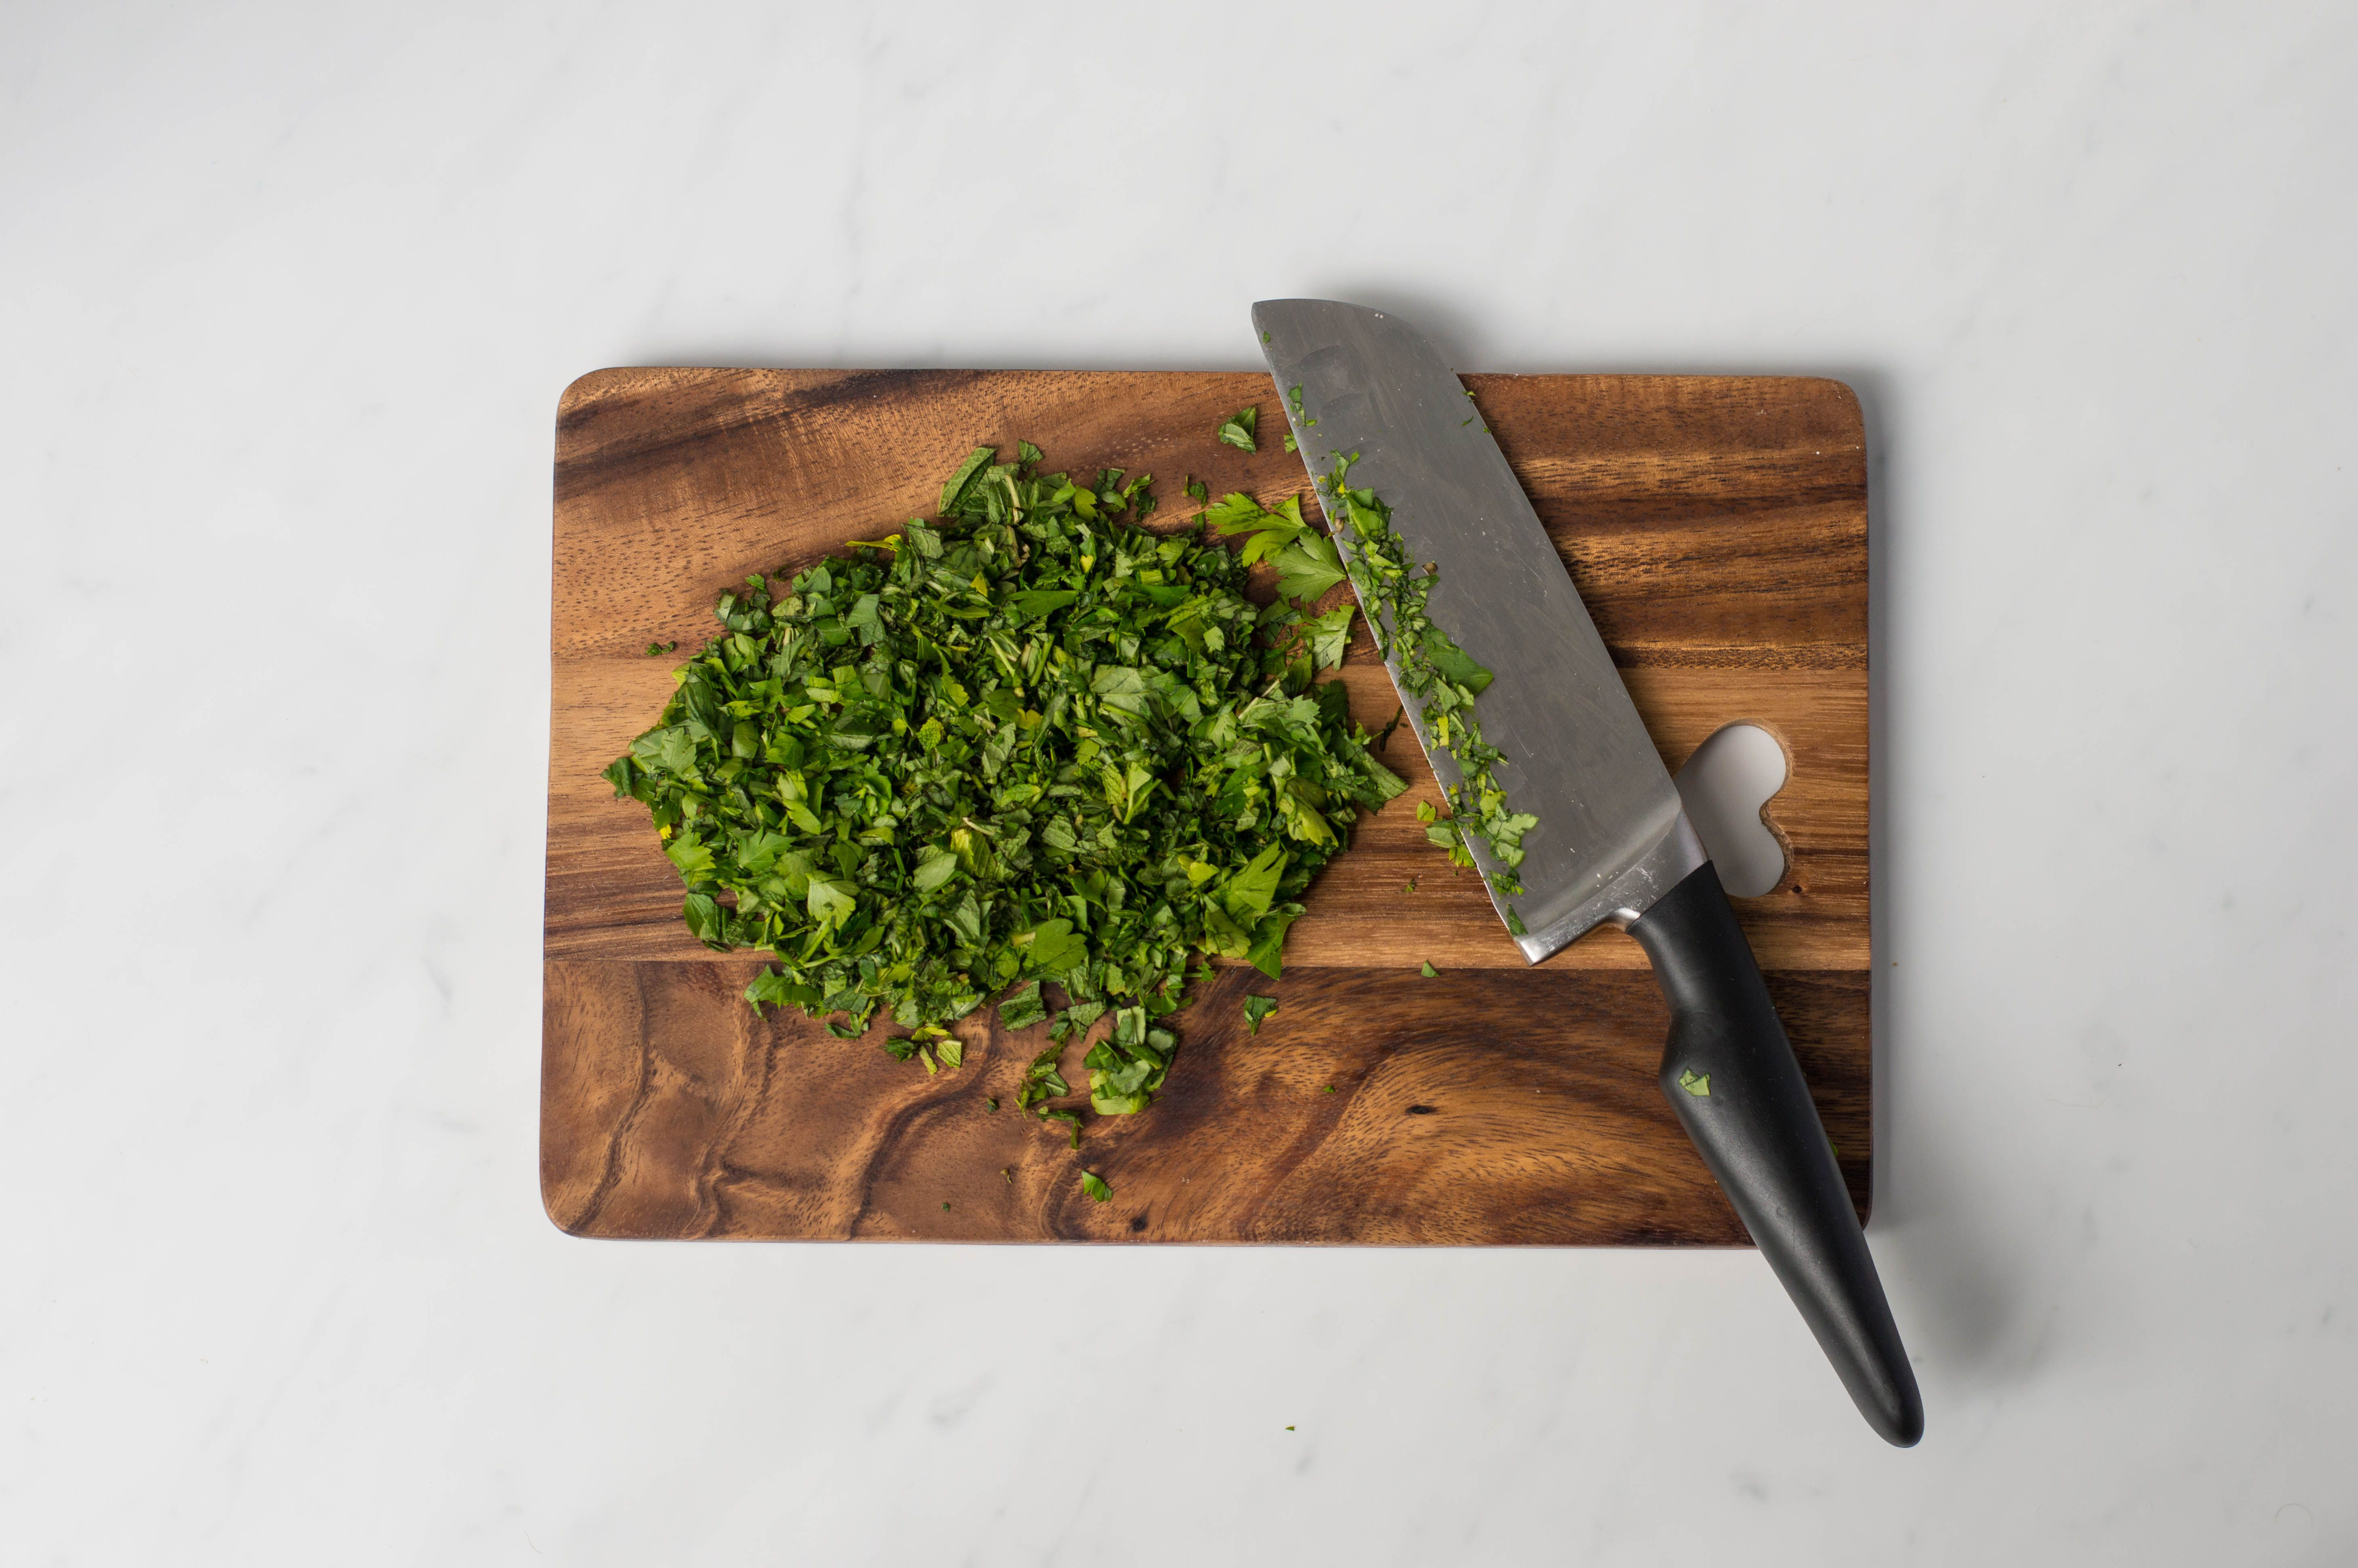 Finely chopped parsley on a cutting board